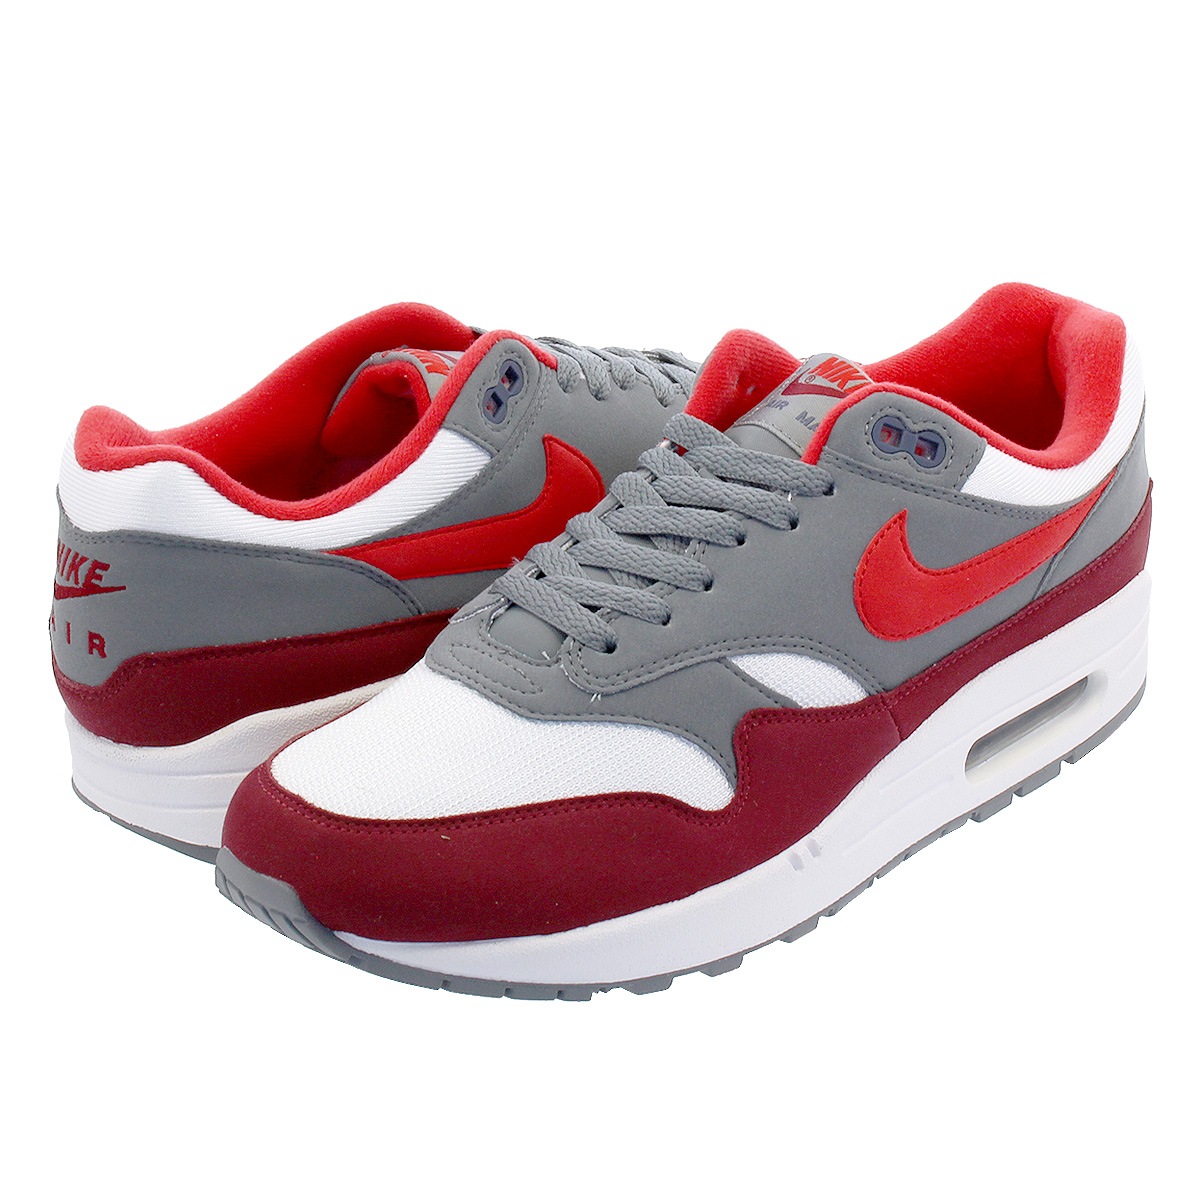 competitive price 77197 00c21 NIKE AIR MAX 1 Kie Ney AMAX 1 WHITE UNIVERSITY RED COOL GREY TEAM RED ah8145 -100